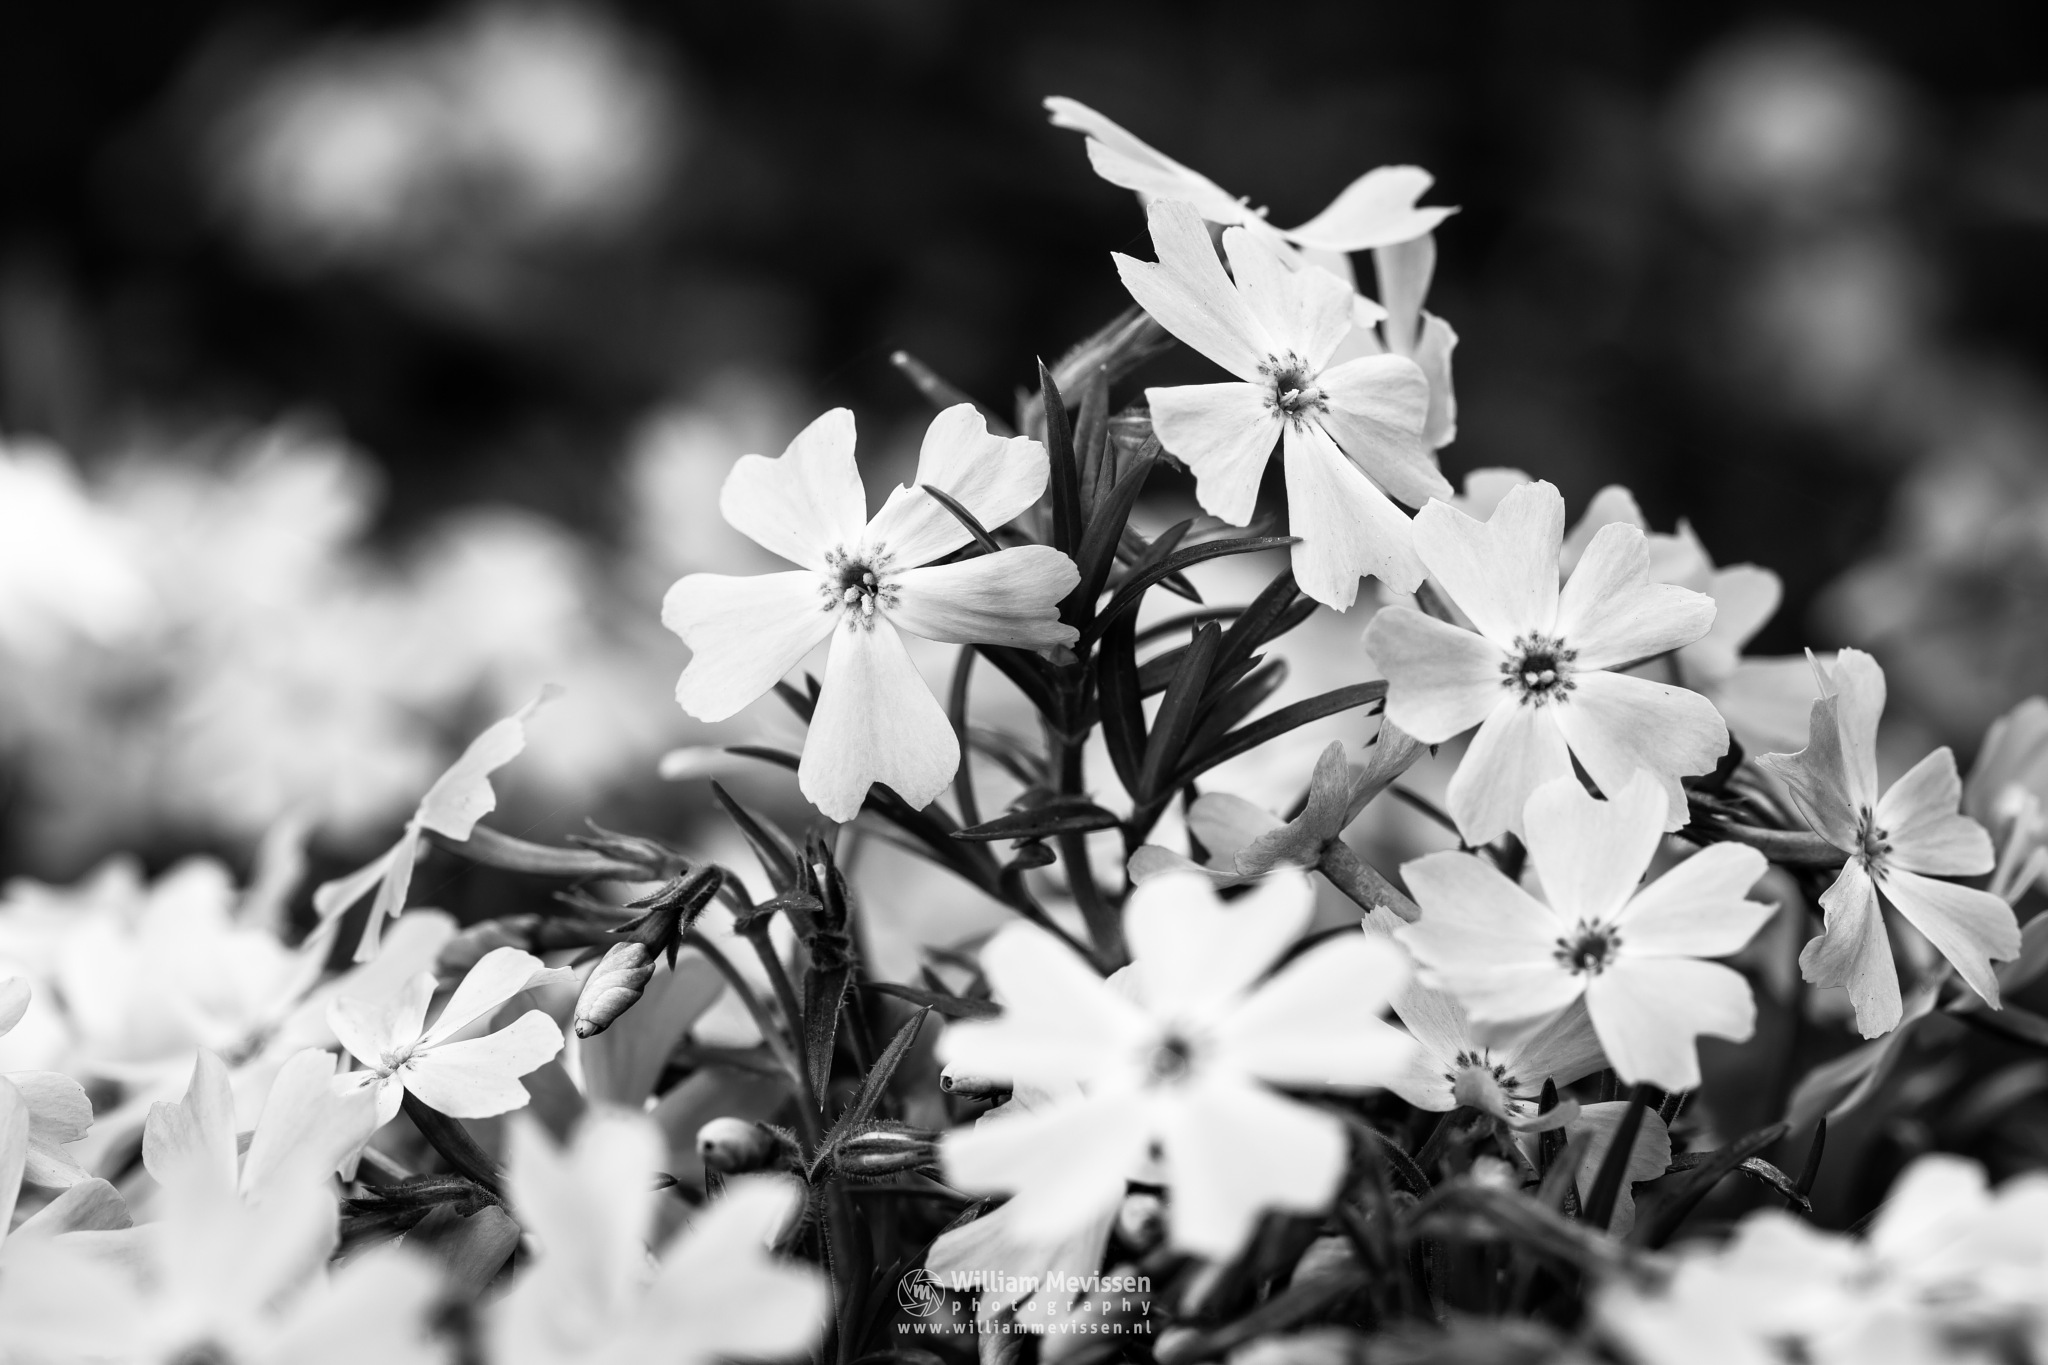 Phlox Subulata by William Mevissen